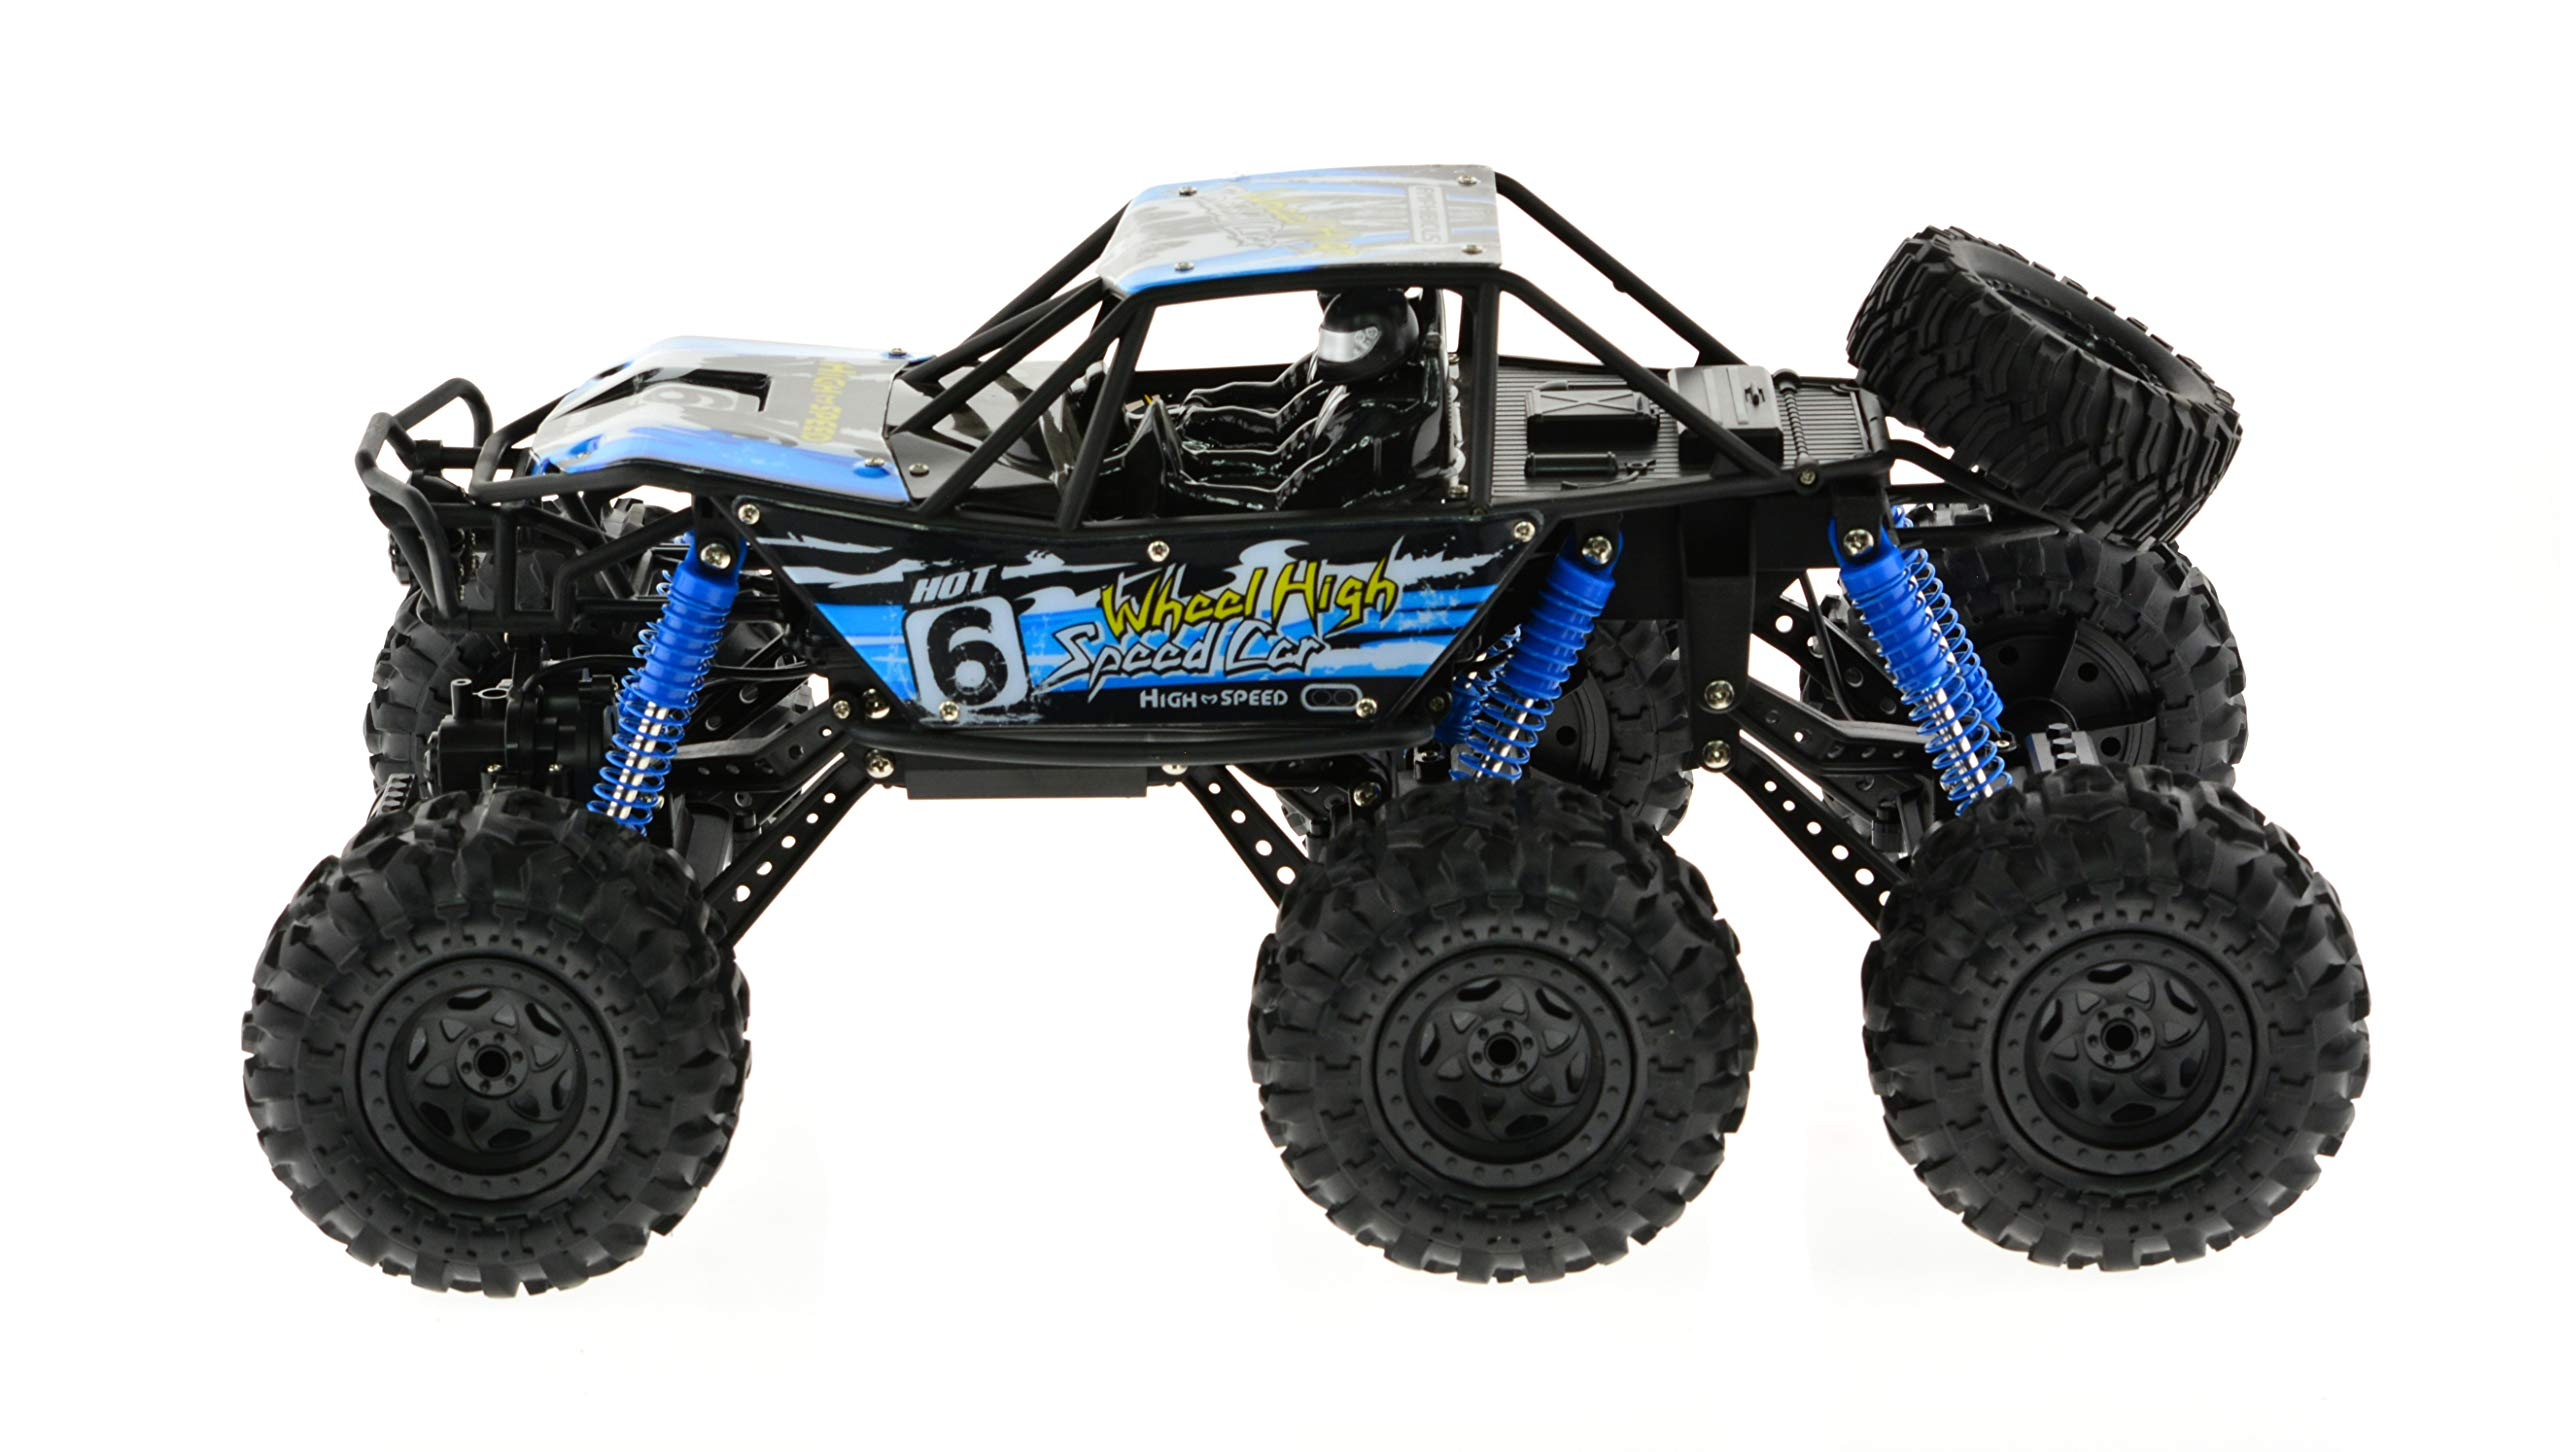 Extreem Hobby CIS-2680 1: 8 Scale 6WD Rock Climber Truck, One Size, Blue